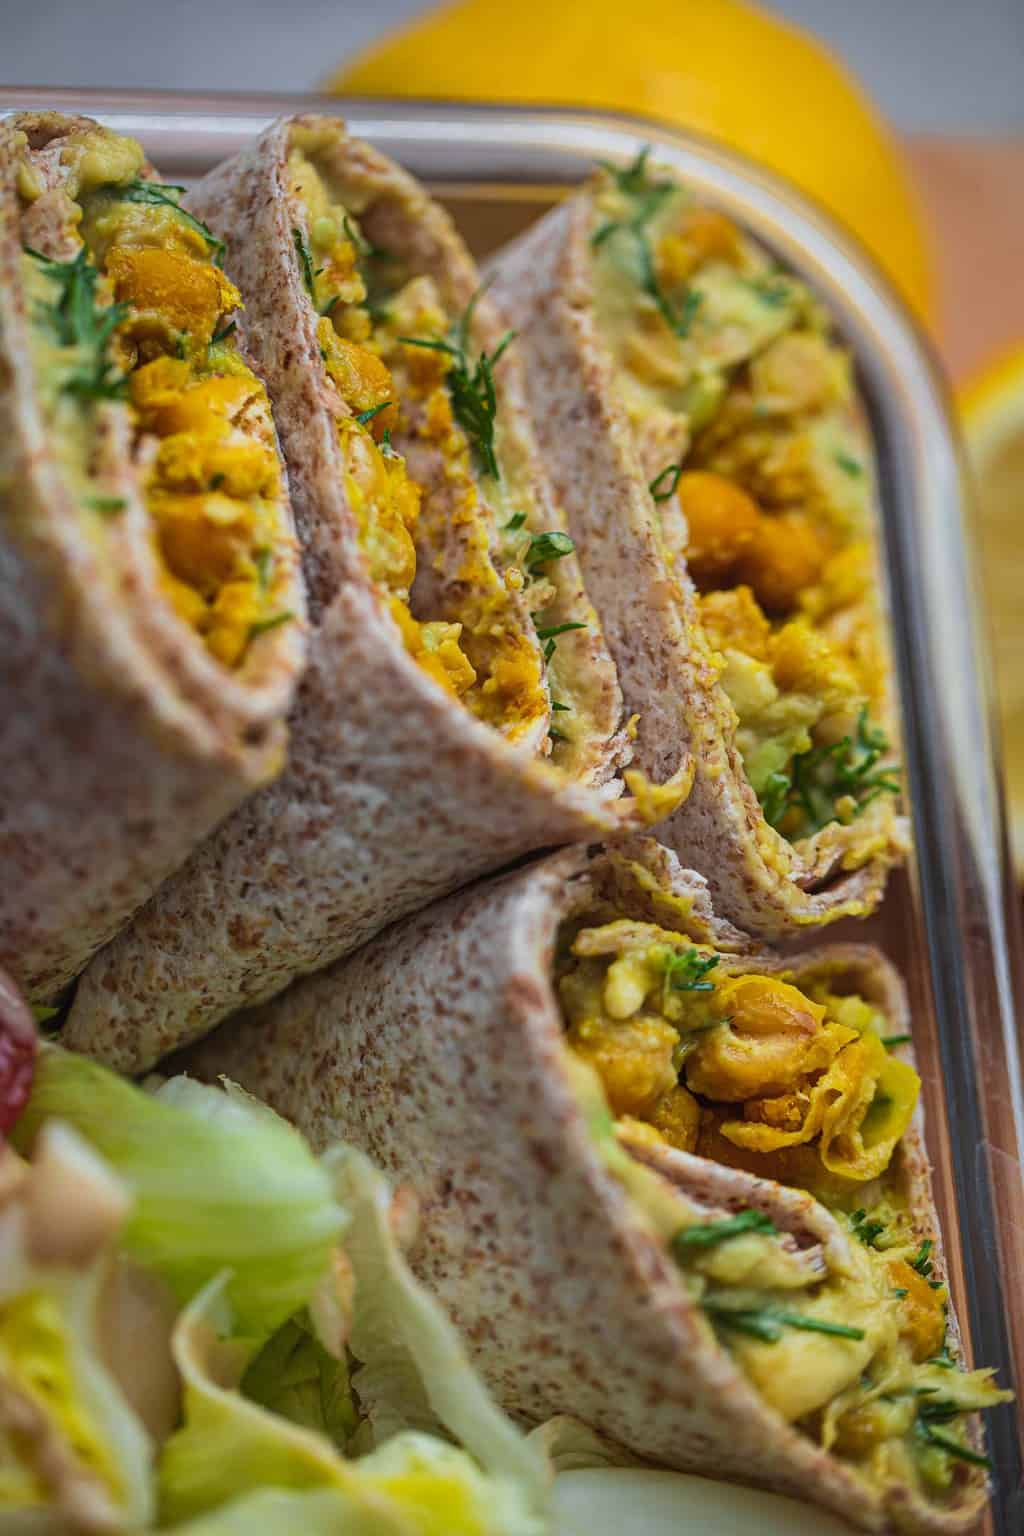 Wrap with avocado and chickpeas